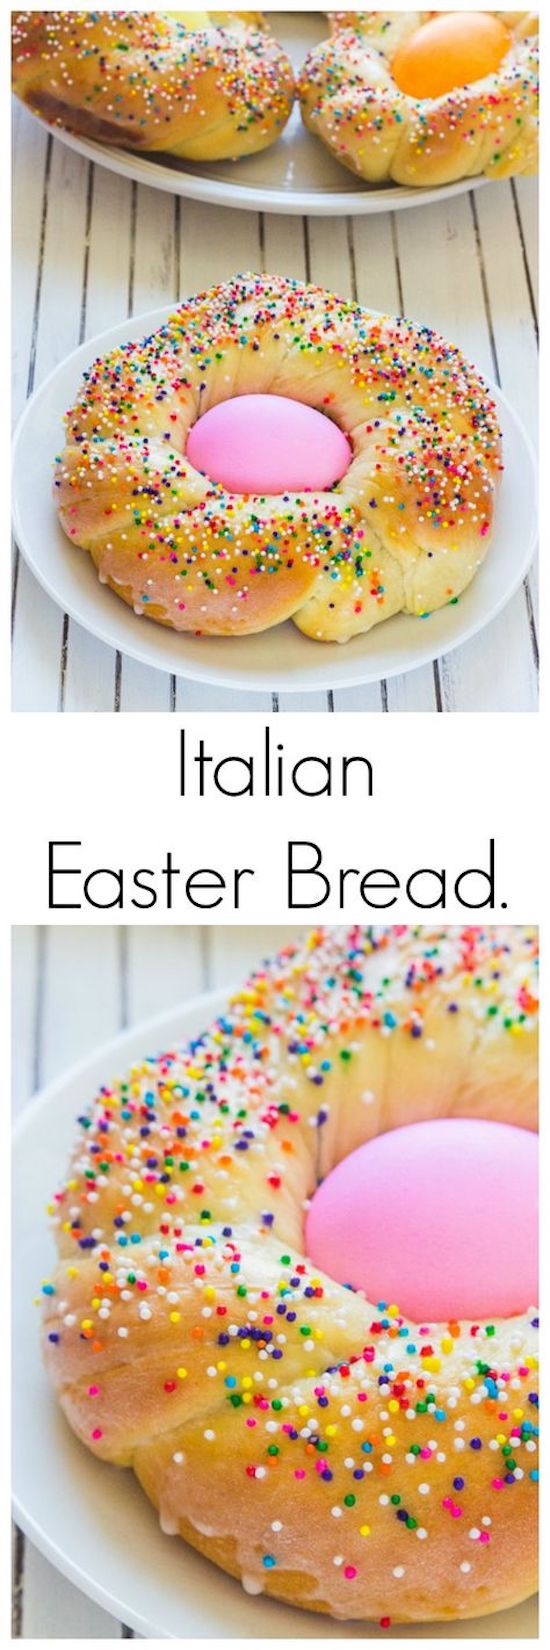 Italian Easter Bread! Look at how cute these Individual Italian Easter Bread rings are! This is a classic Easter day recipe that you must try (if you haven't already). easter recipes ideas dinner-easter recipes ideas-easter recipes side dishes-easter recipes dinner main courses-easter recipes appetizers #easter #easterrecipes #easyeaster #recipes